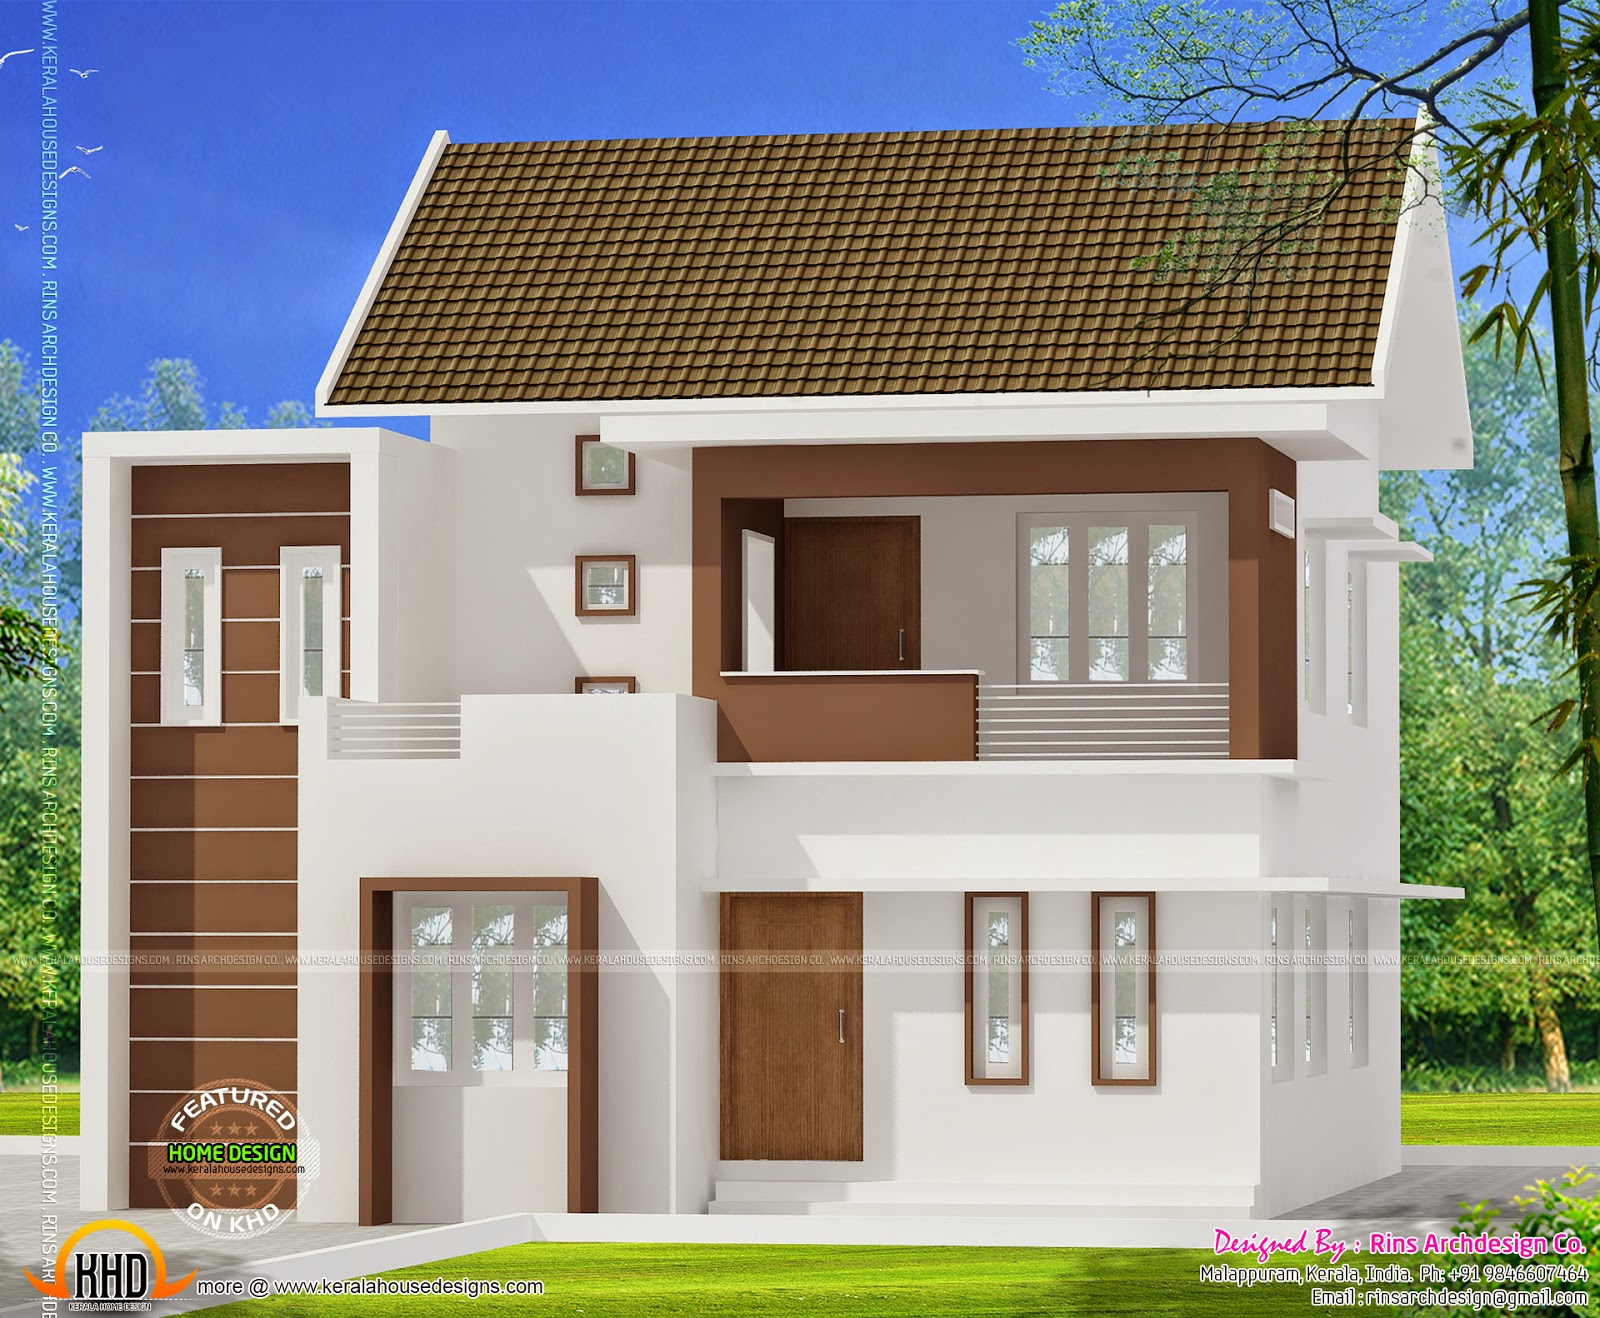 1750 Square Feet House Kerala Home Design And Floor Plans